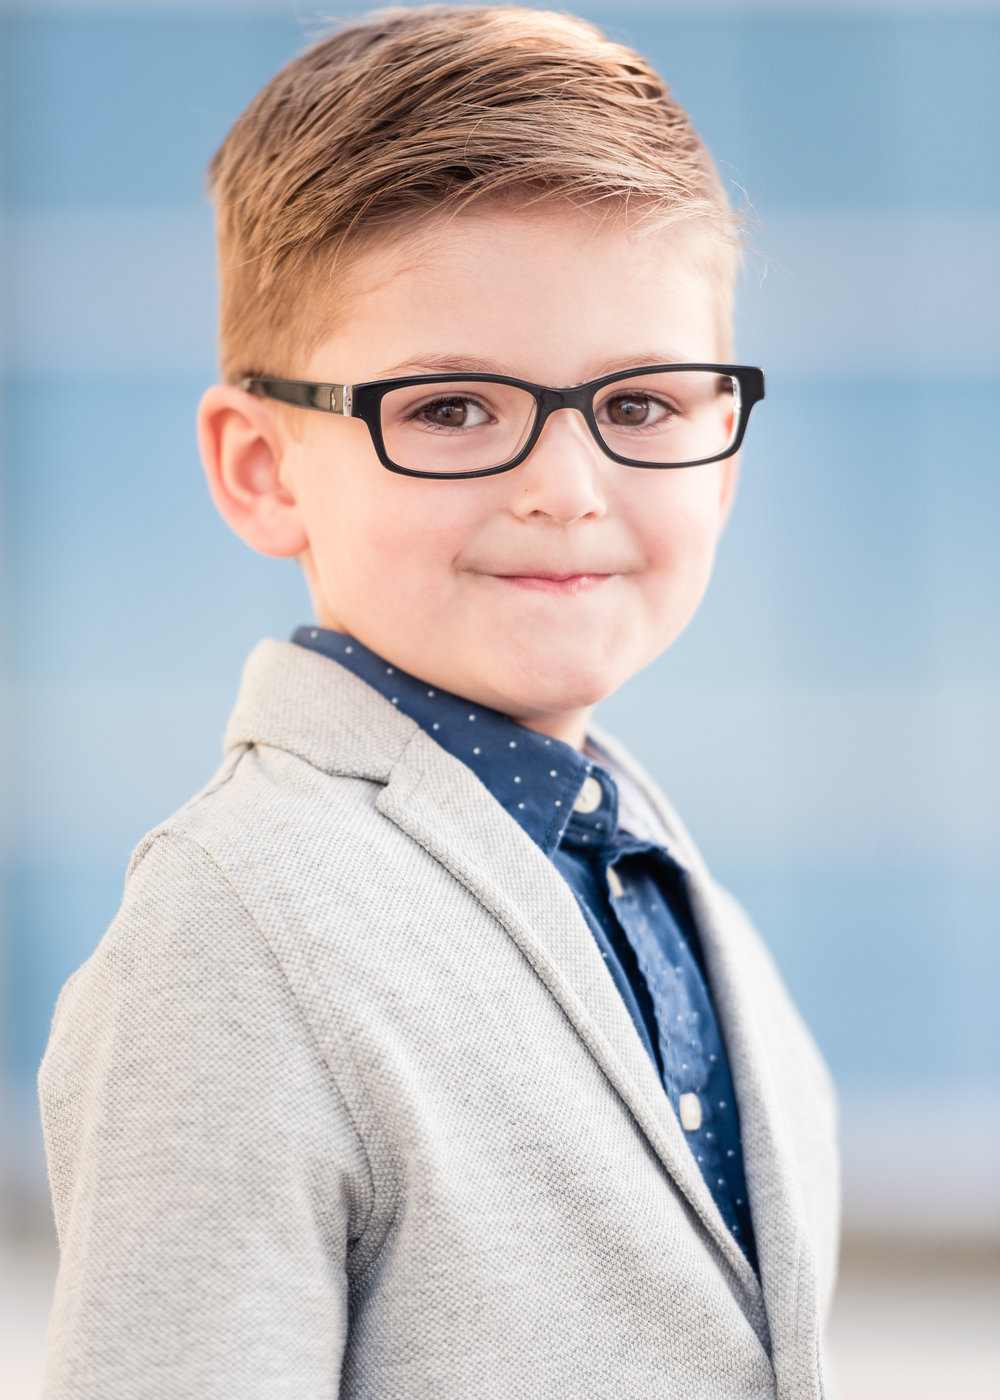 ChildrenHeadshots028.jpg